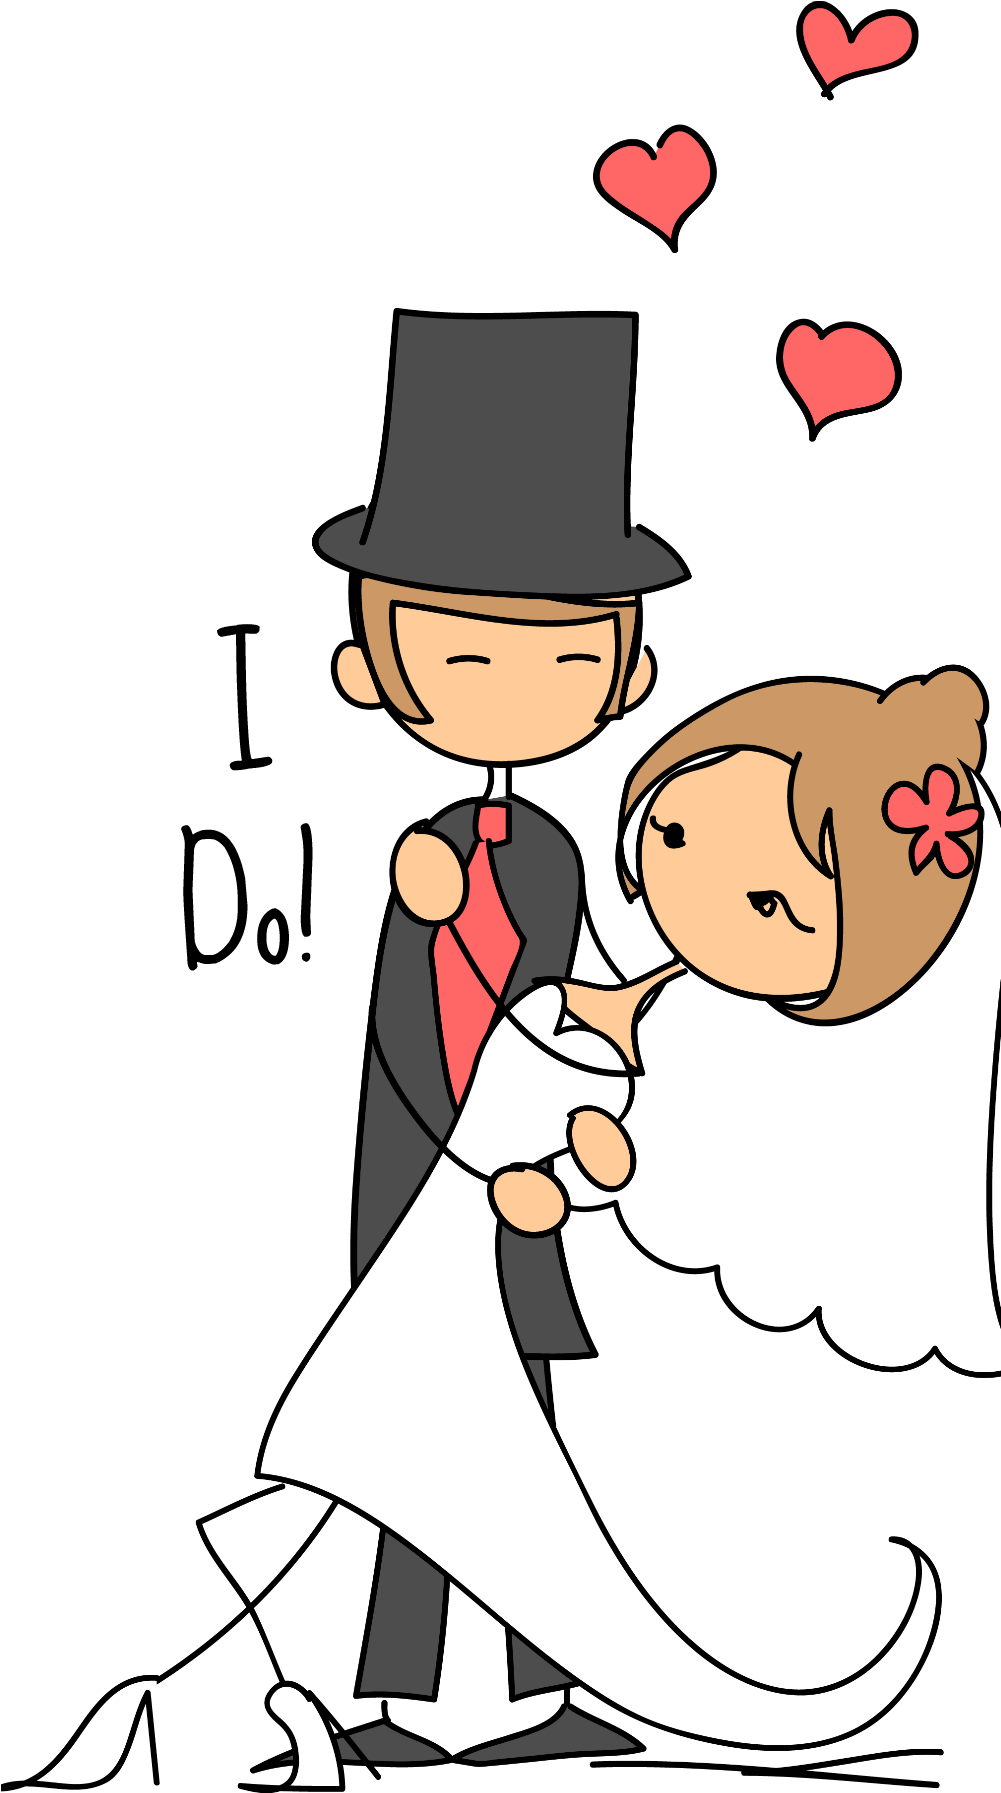 Download Cute Hug Love Friends Cool Wallpaper Anniversary Wishes Wedding Day Cartoon Full Size Png Image Pngkit